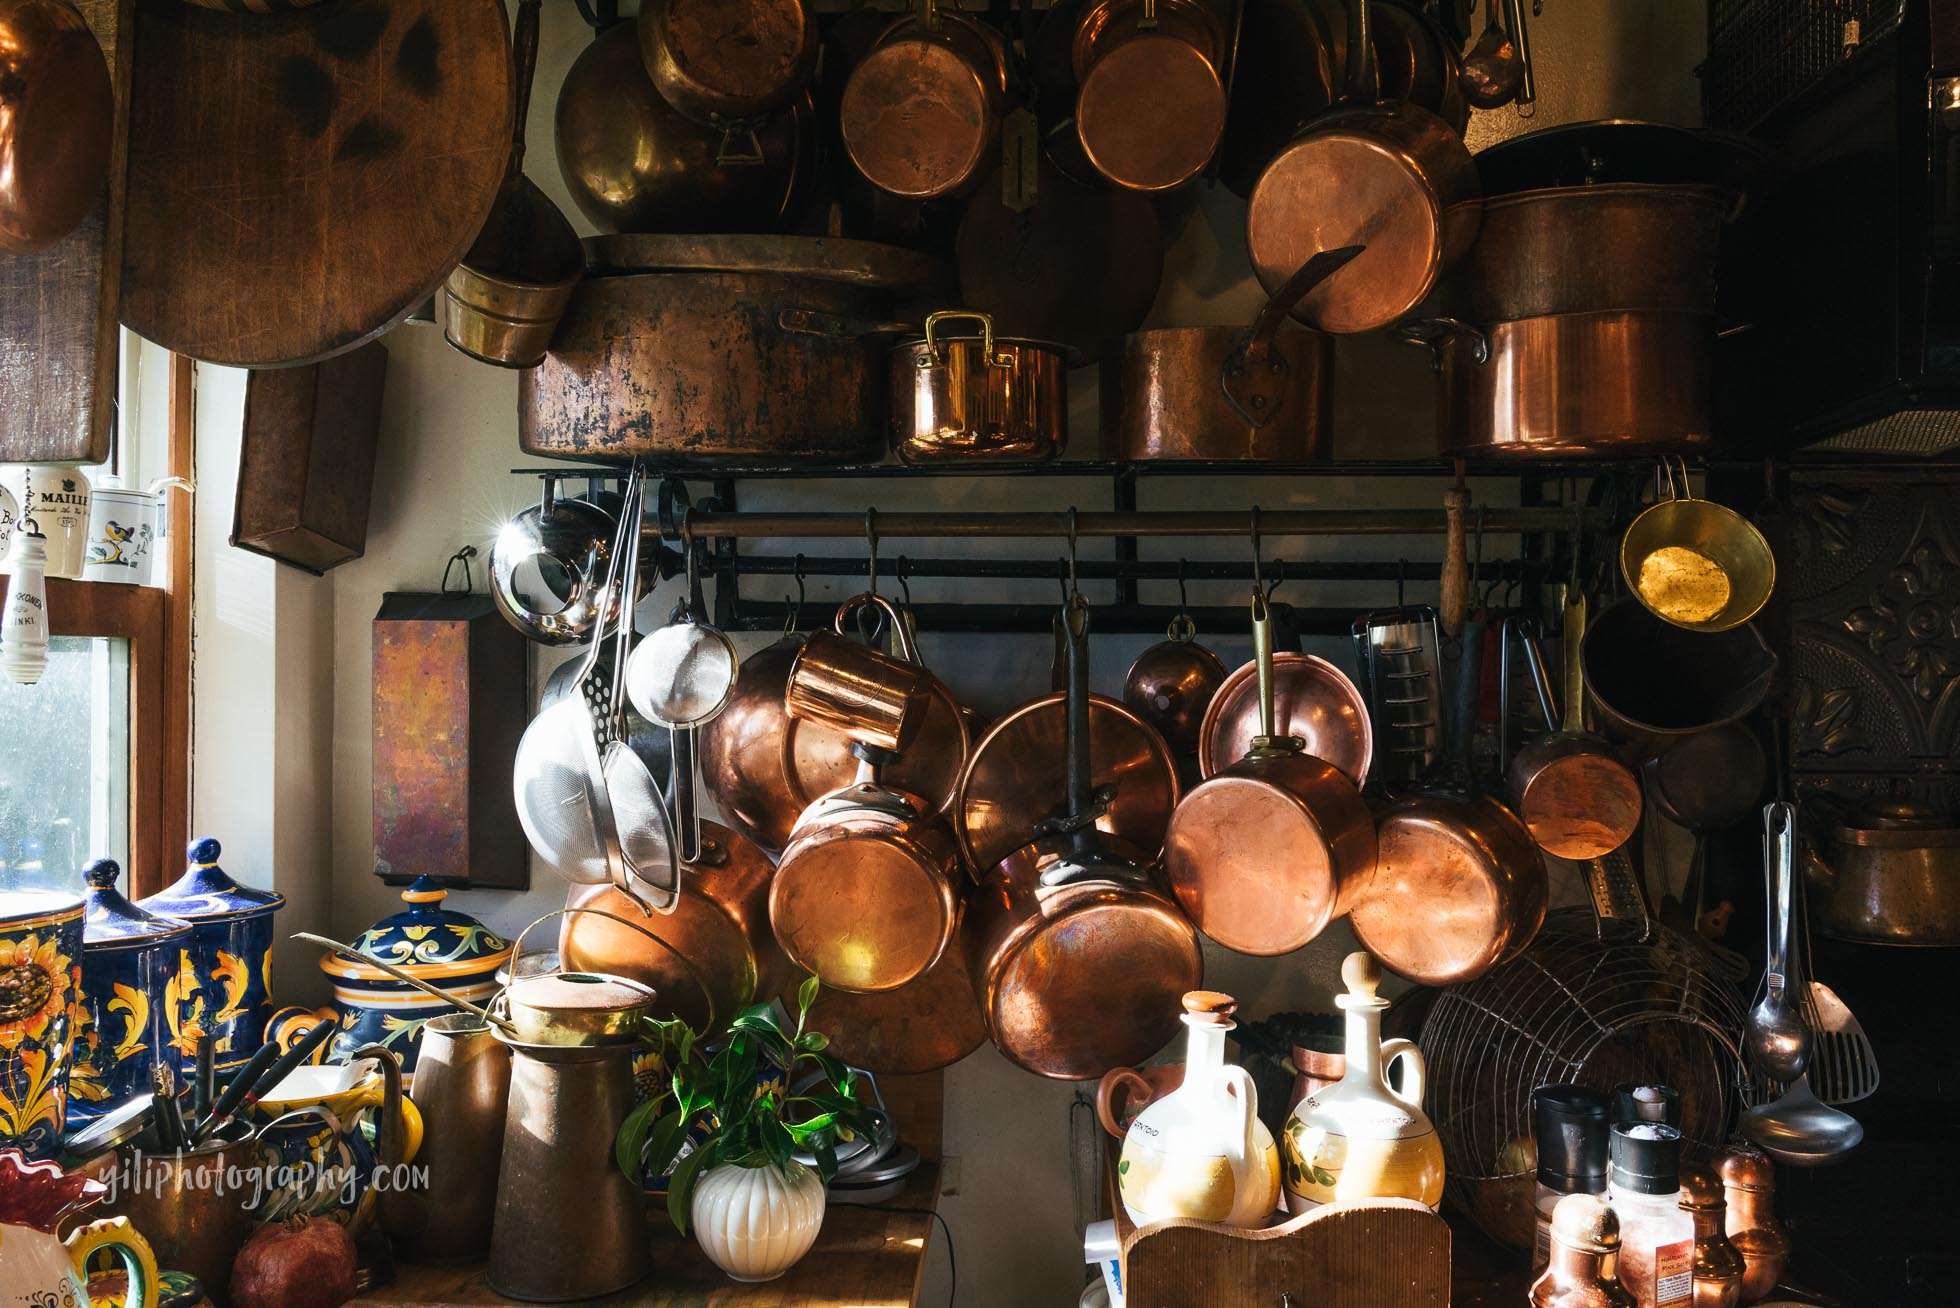 large collection of copper pots and pans hanging in kitchen